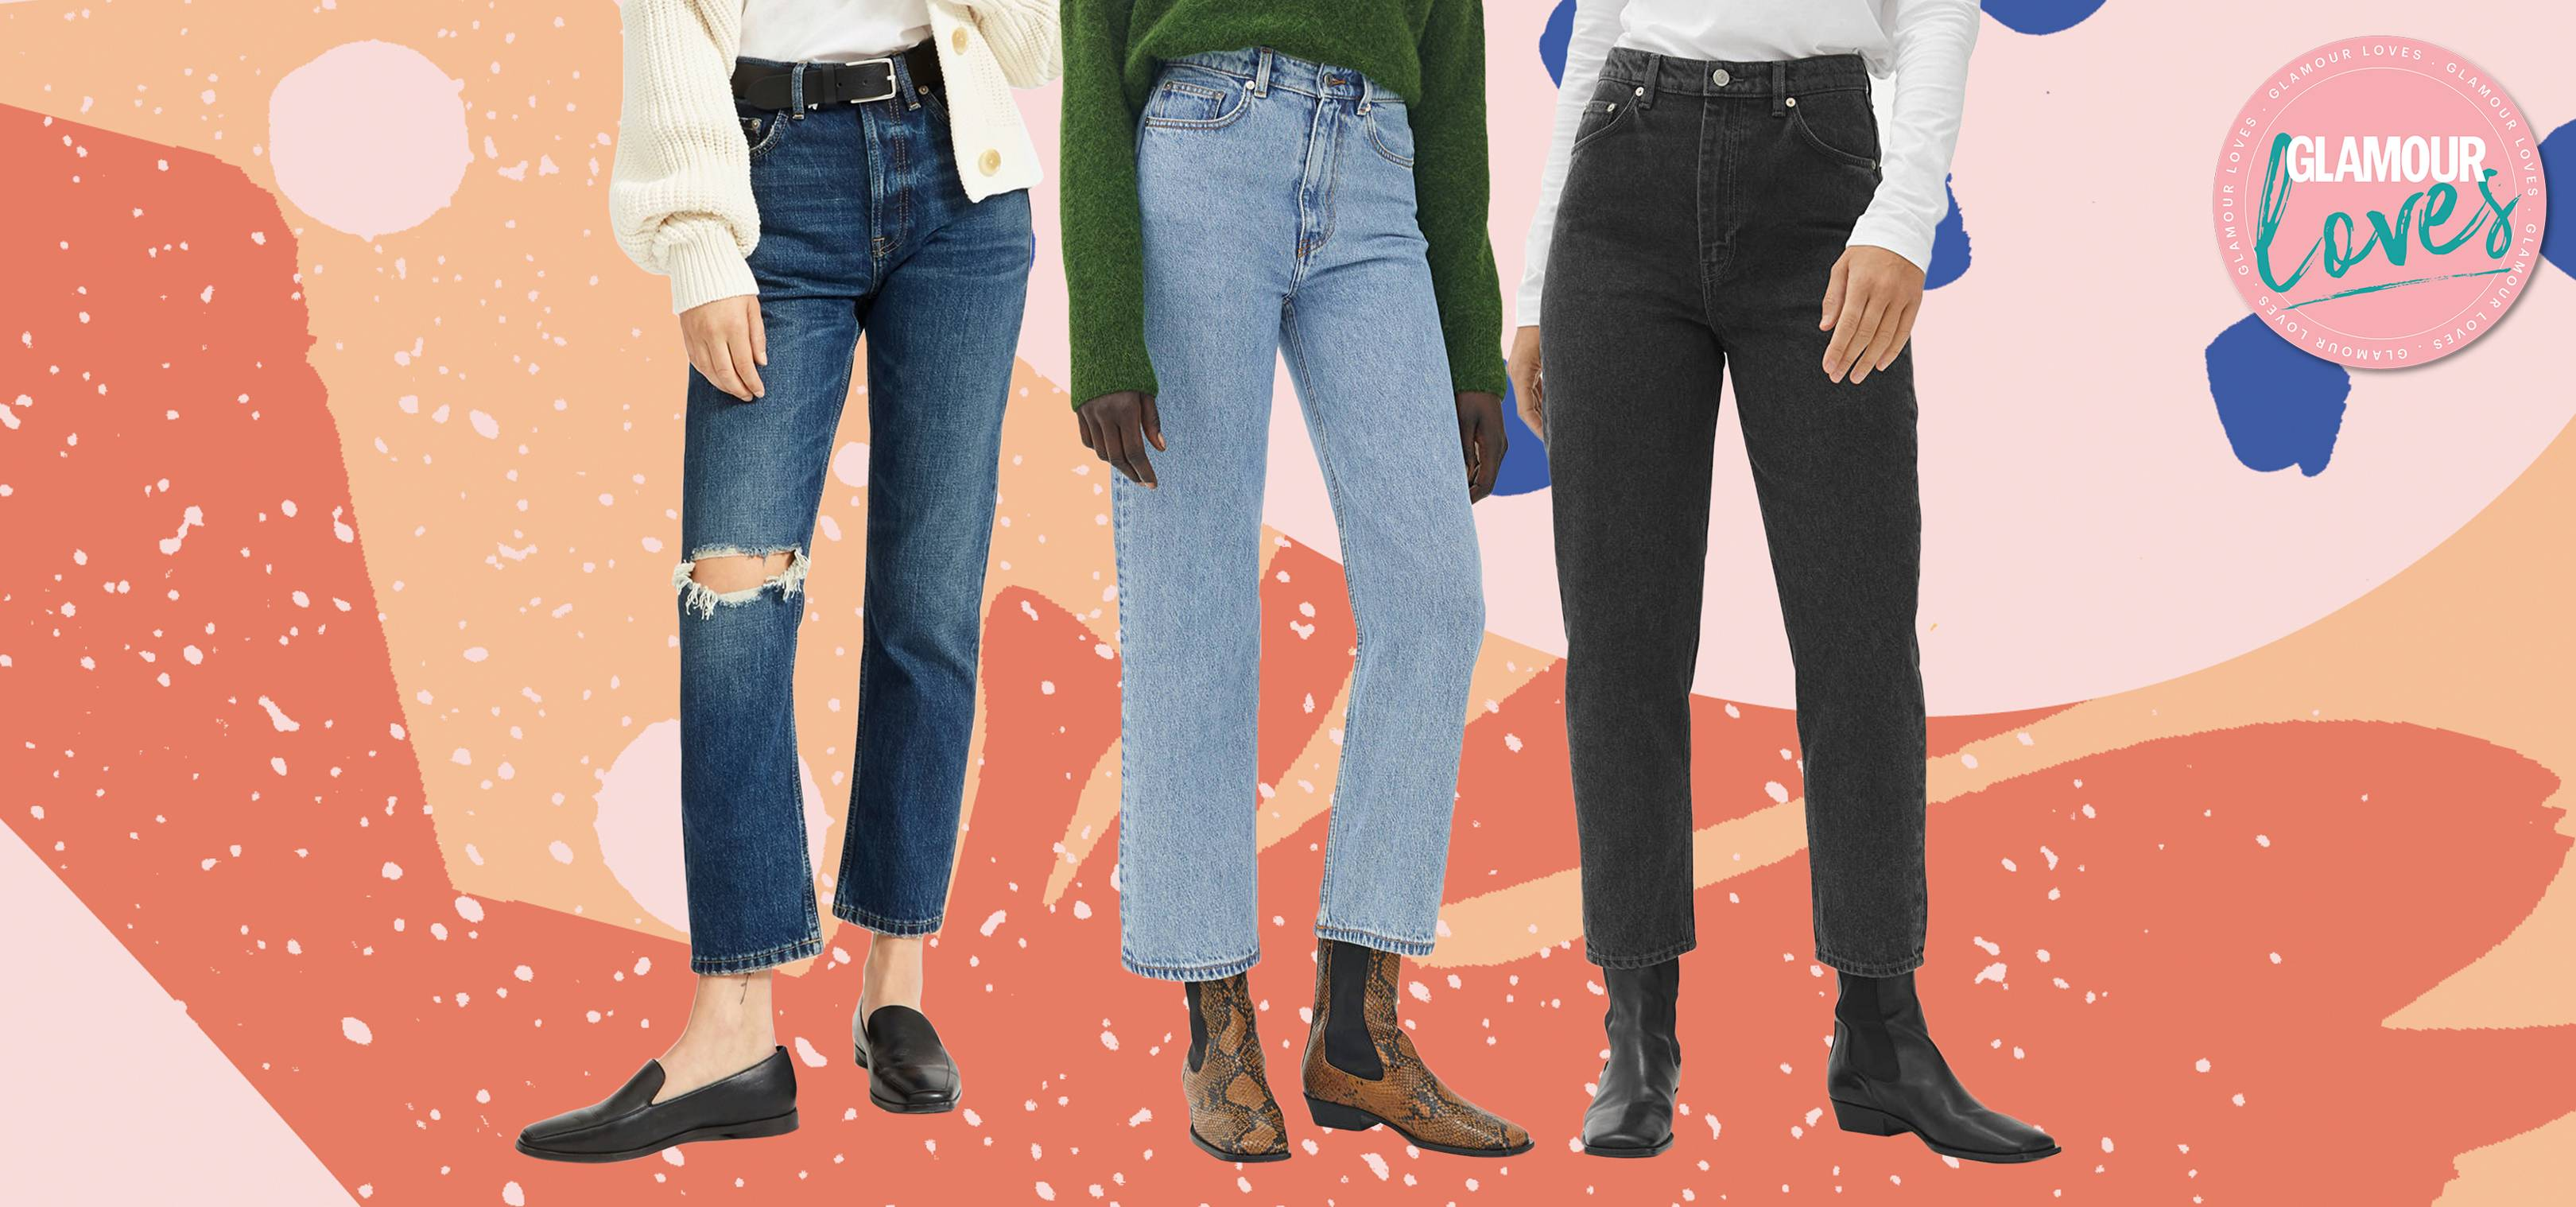 It's official: these are the best jeans for women to buy now that will last you forever